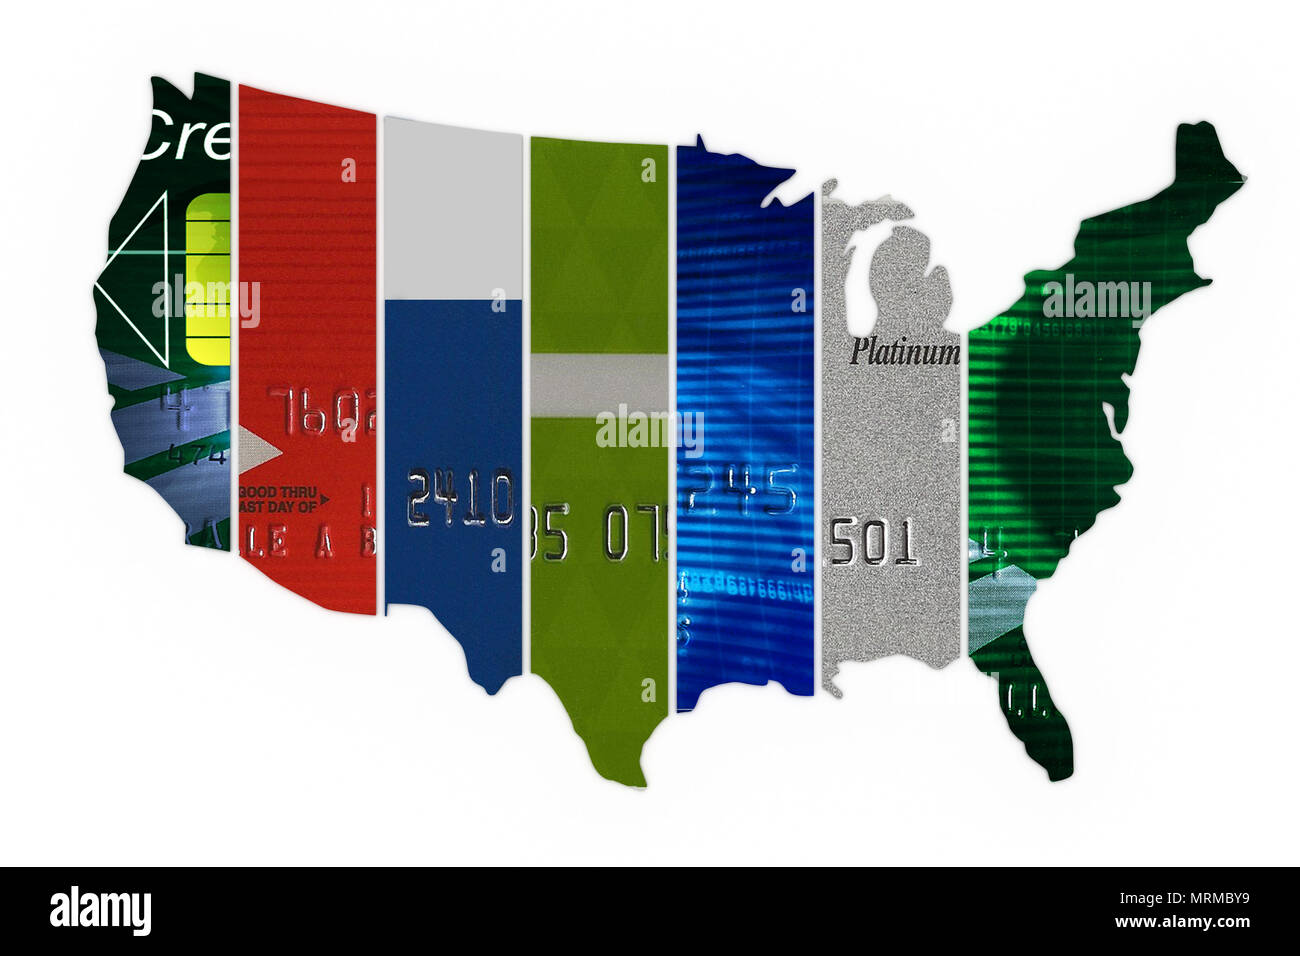 The United States of credit,Various credit cards in the shape of the United States, credit card debt in usa - Stock Image